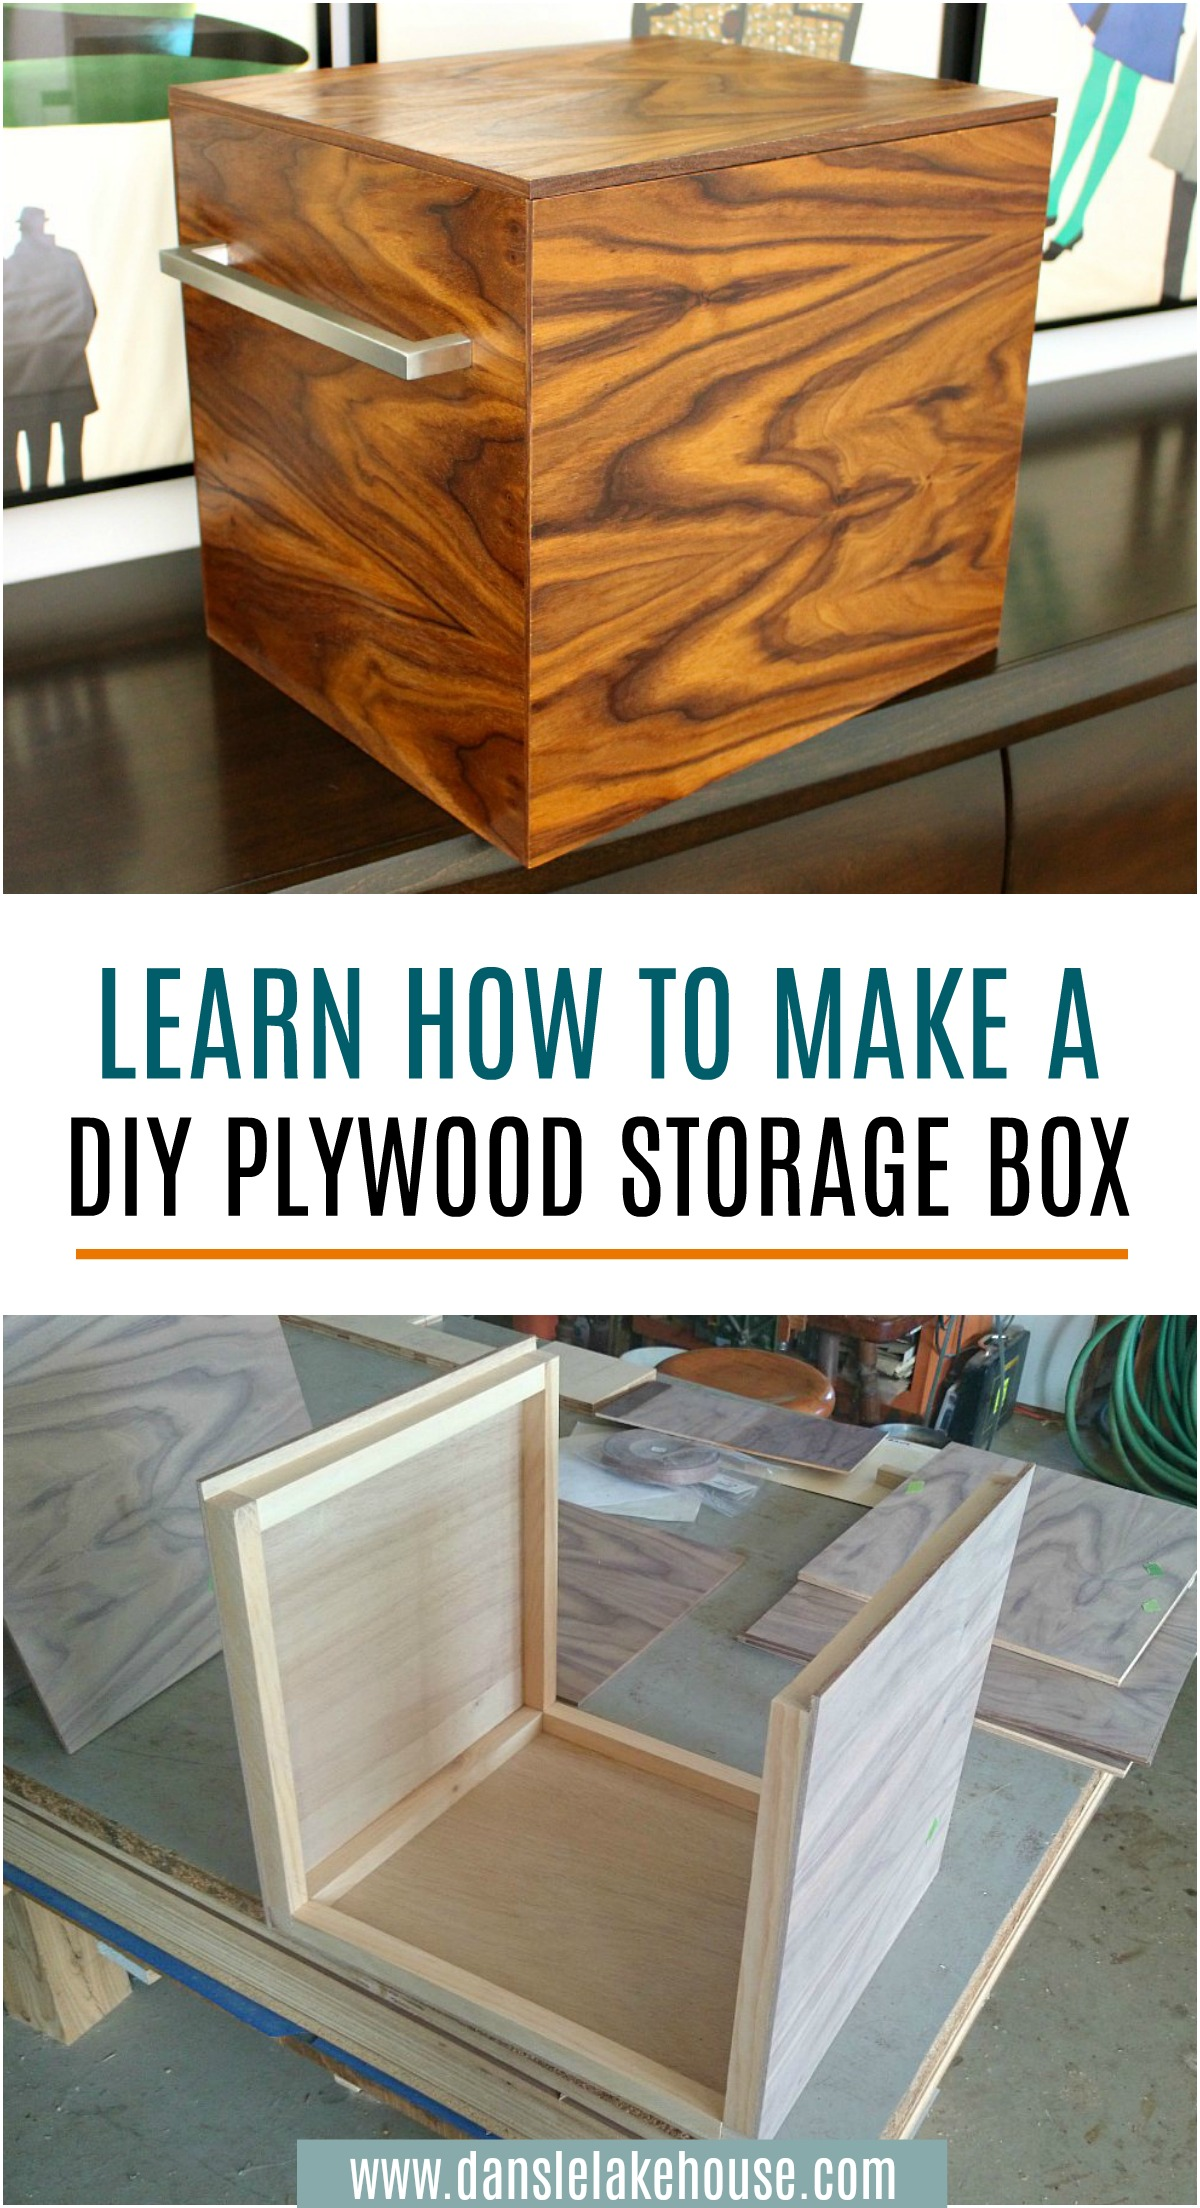 DIY Plywood Storage Bins - Get the Step-by-Step Tutorial with Photos and Supply List! #diy #plywoodprojects #woodworking #organizing #walnutplywood